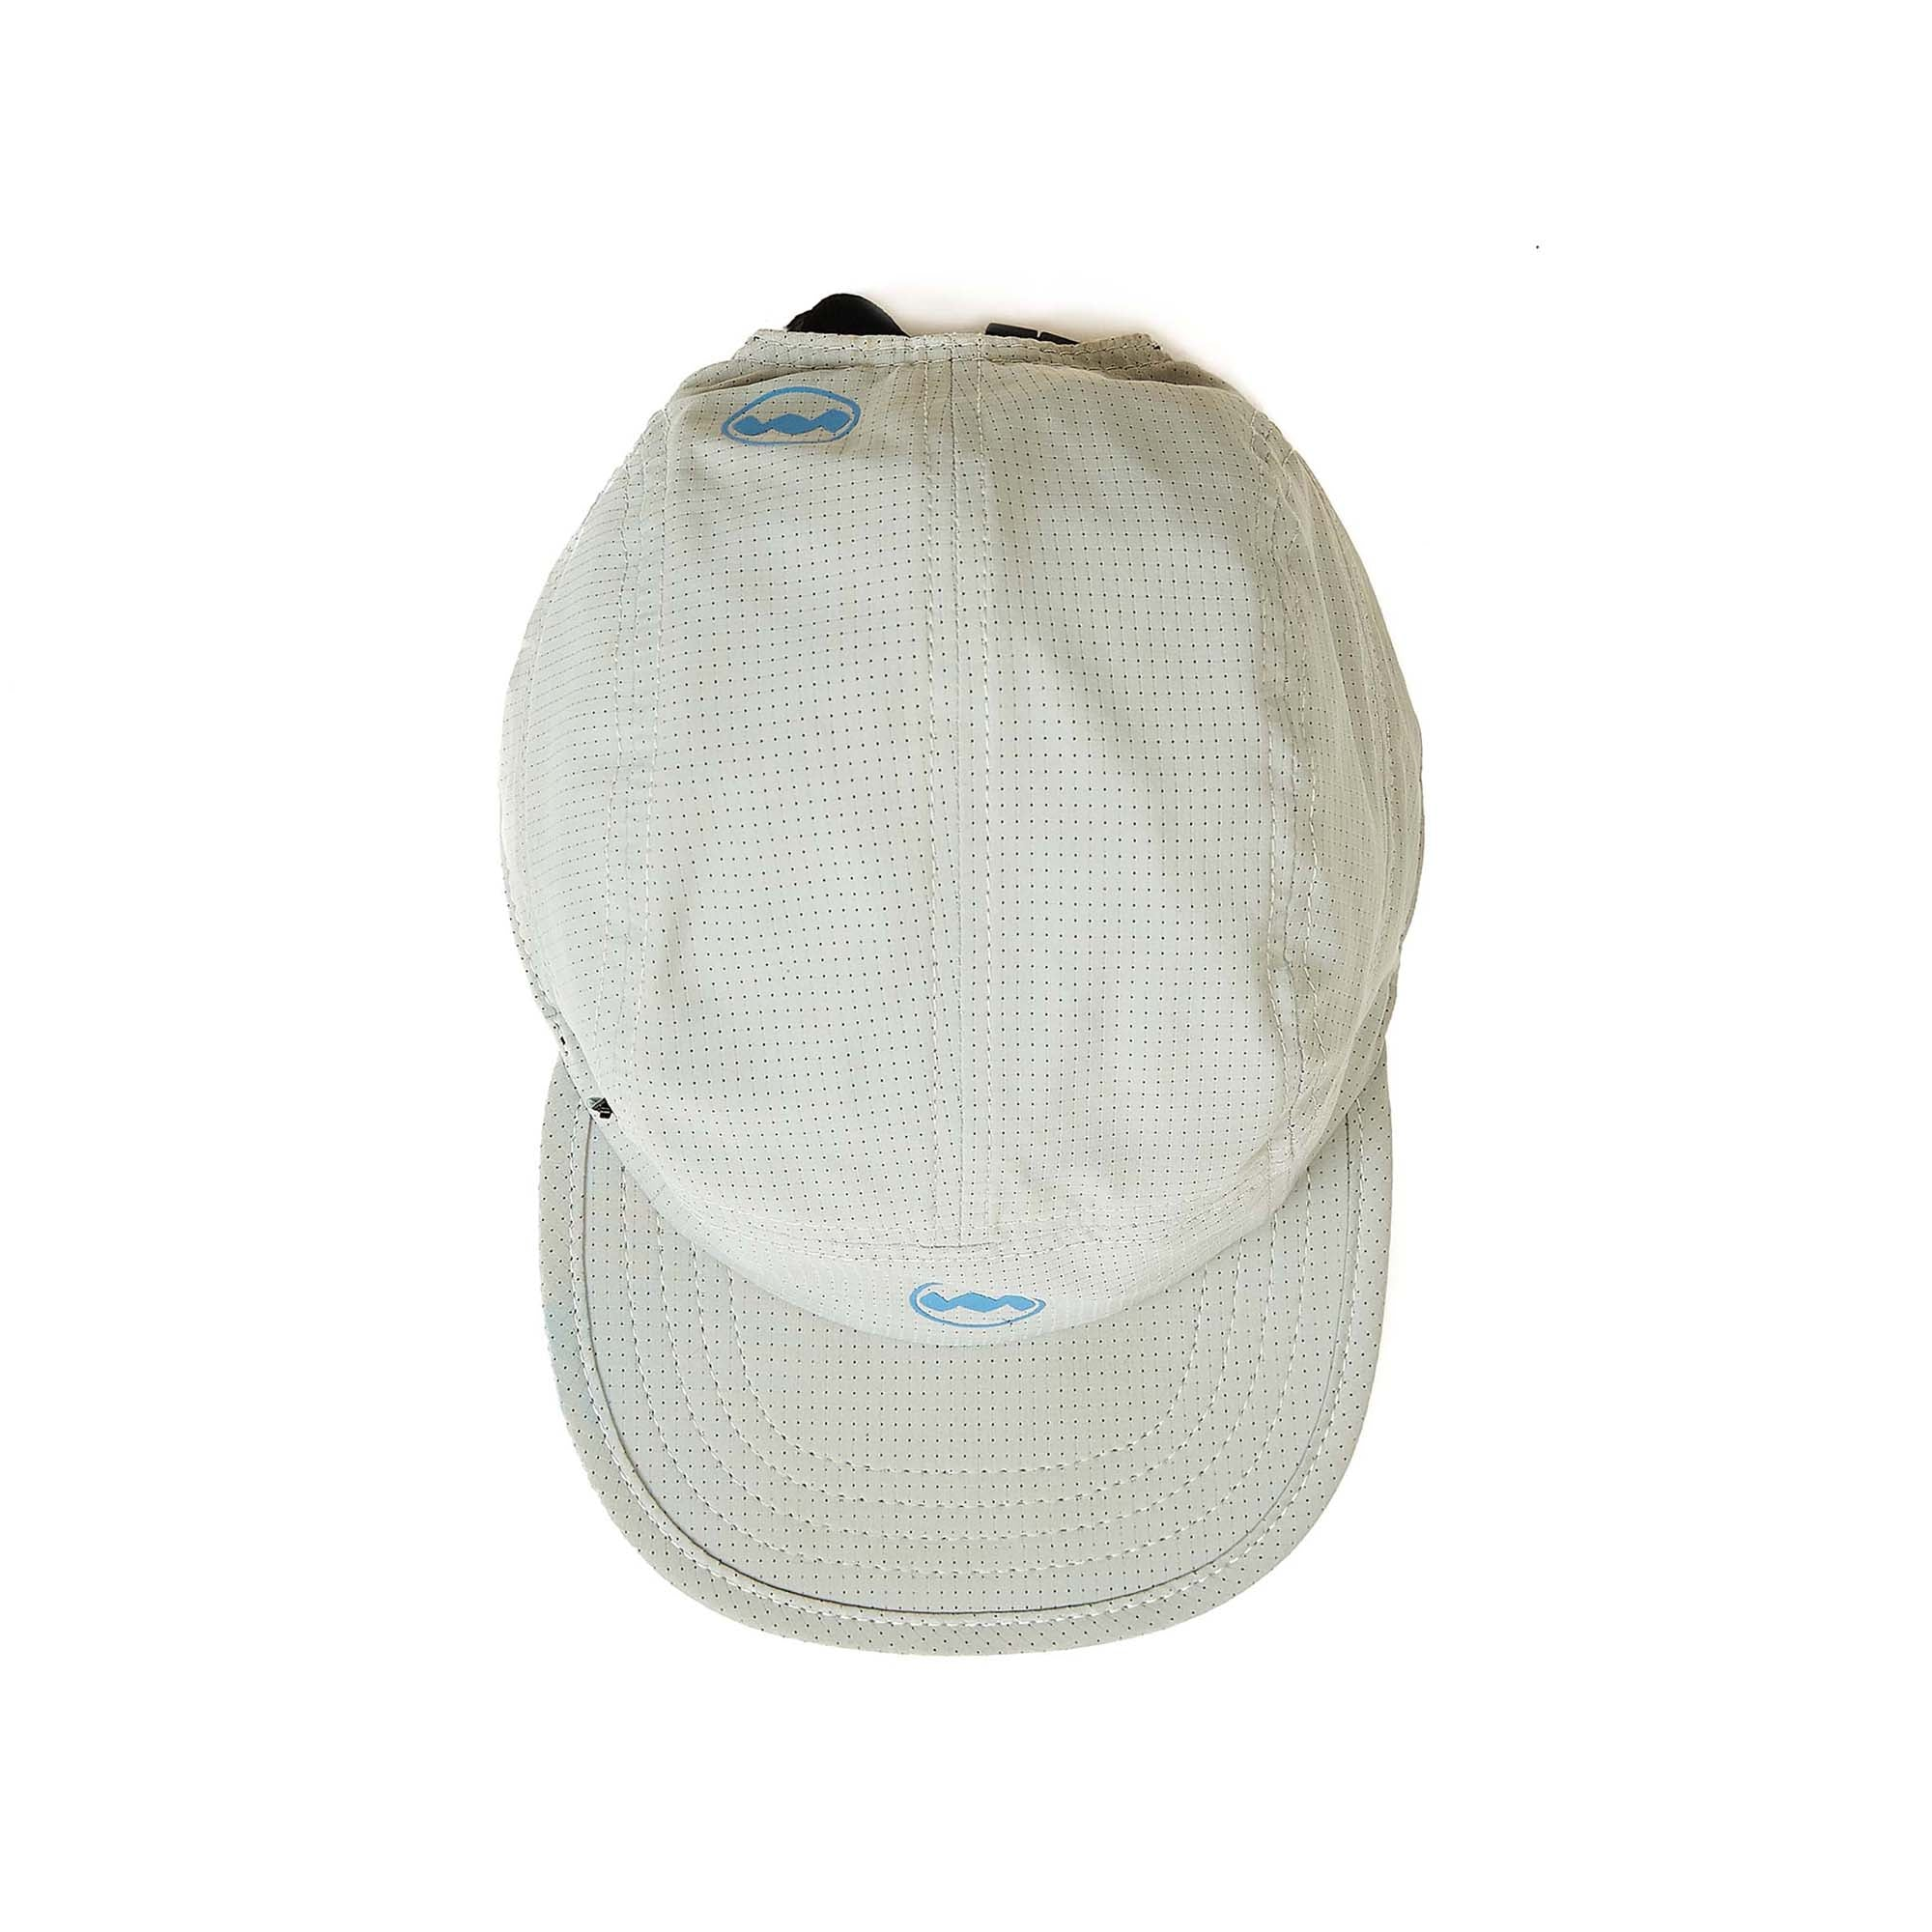 [Re]Run Cap in Haze